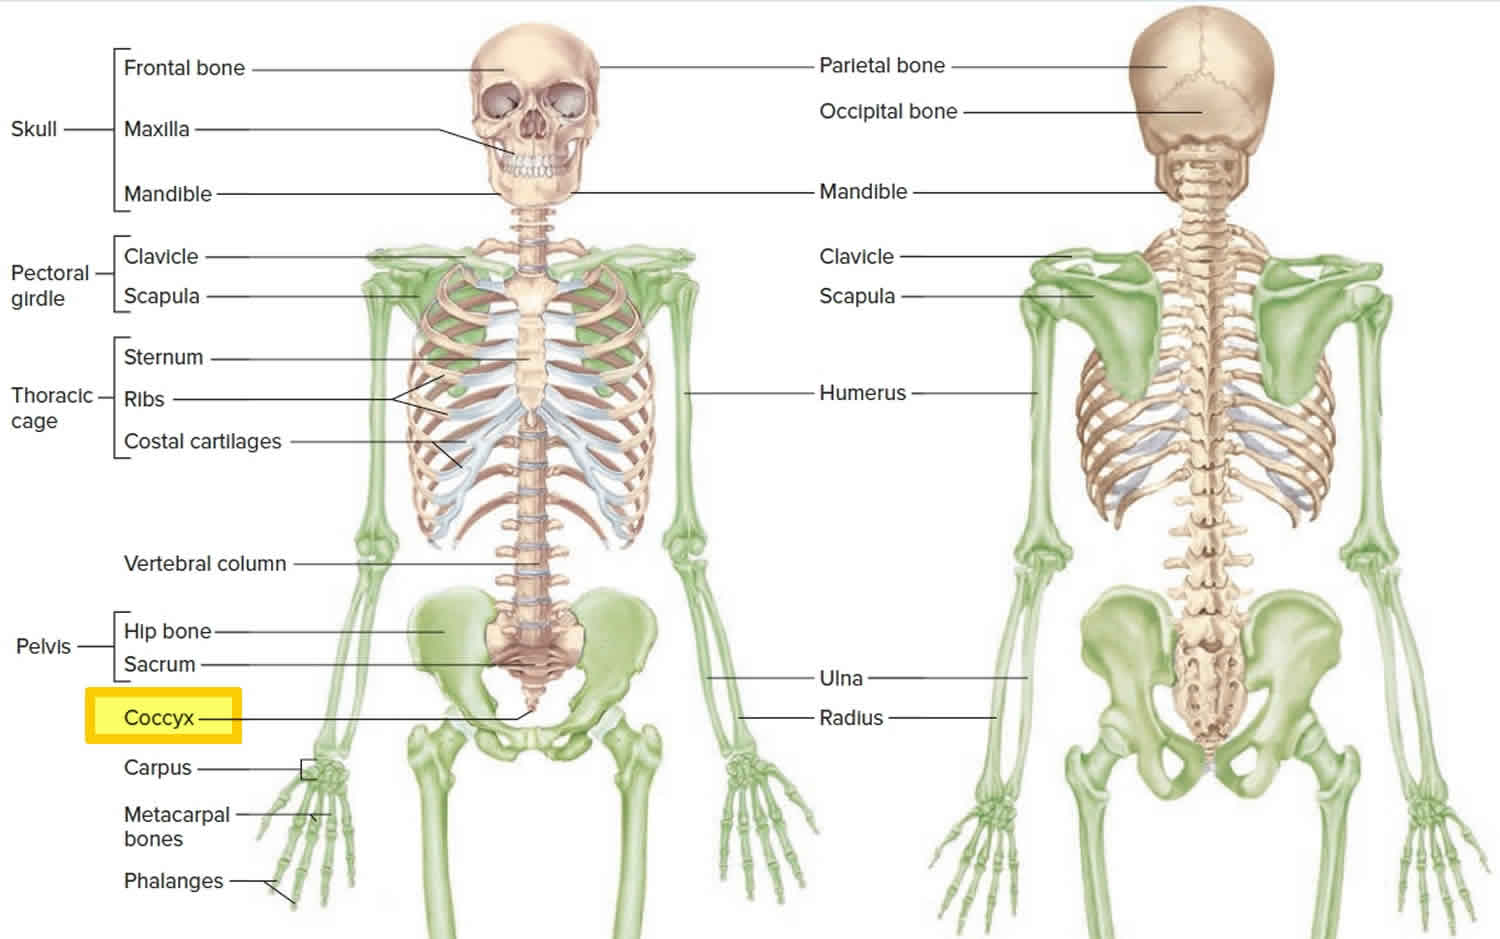 Coccyx bone location